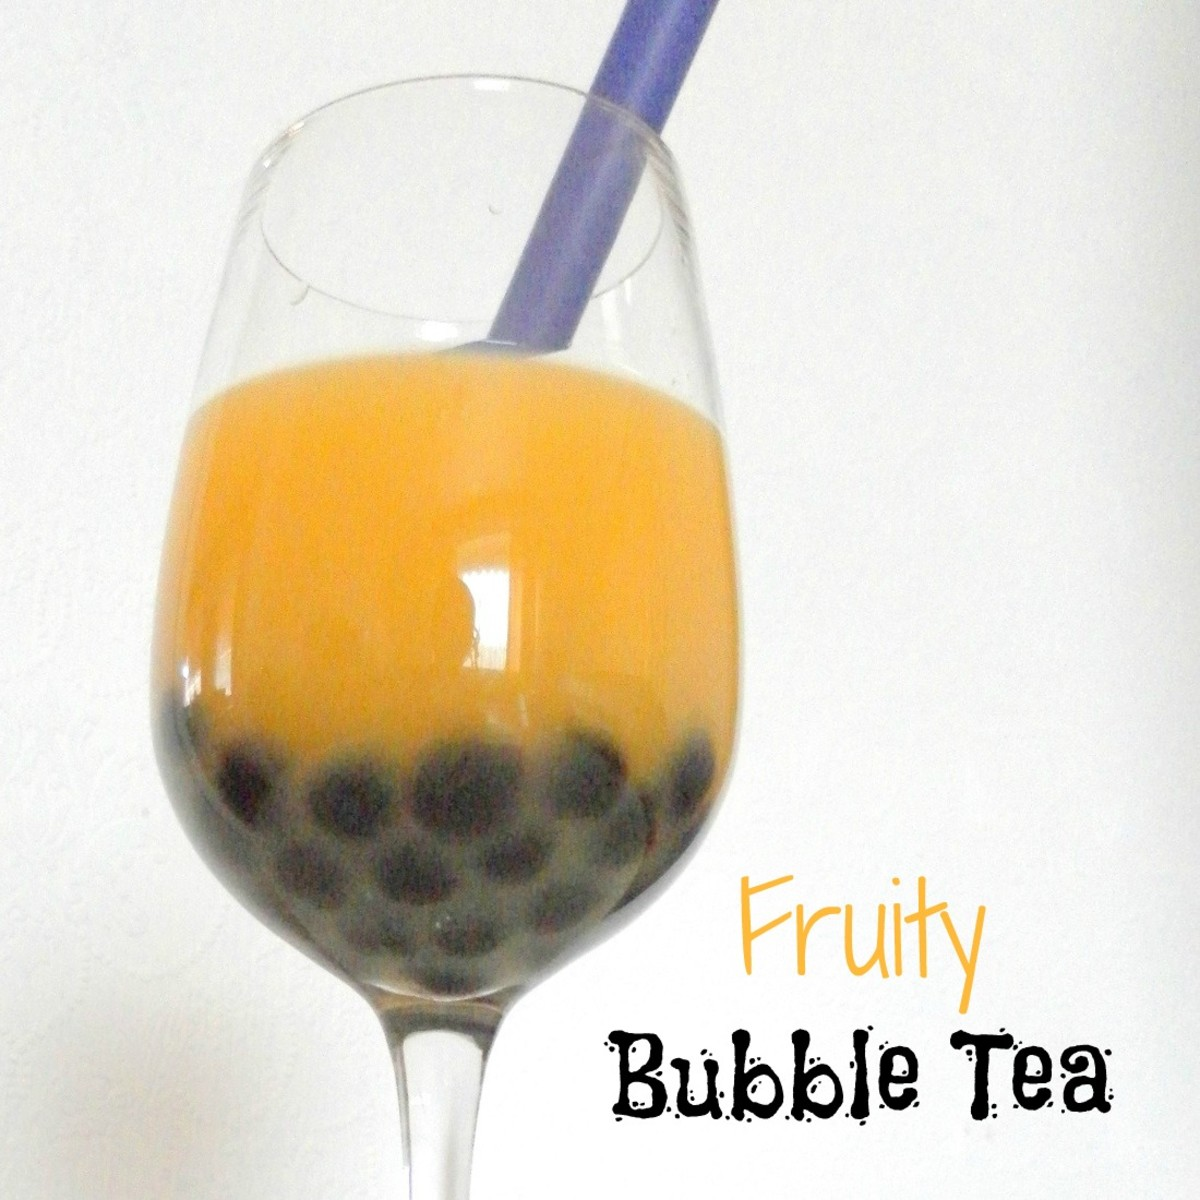 It's easy to make a deliciously fruity bubble tea!